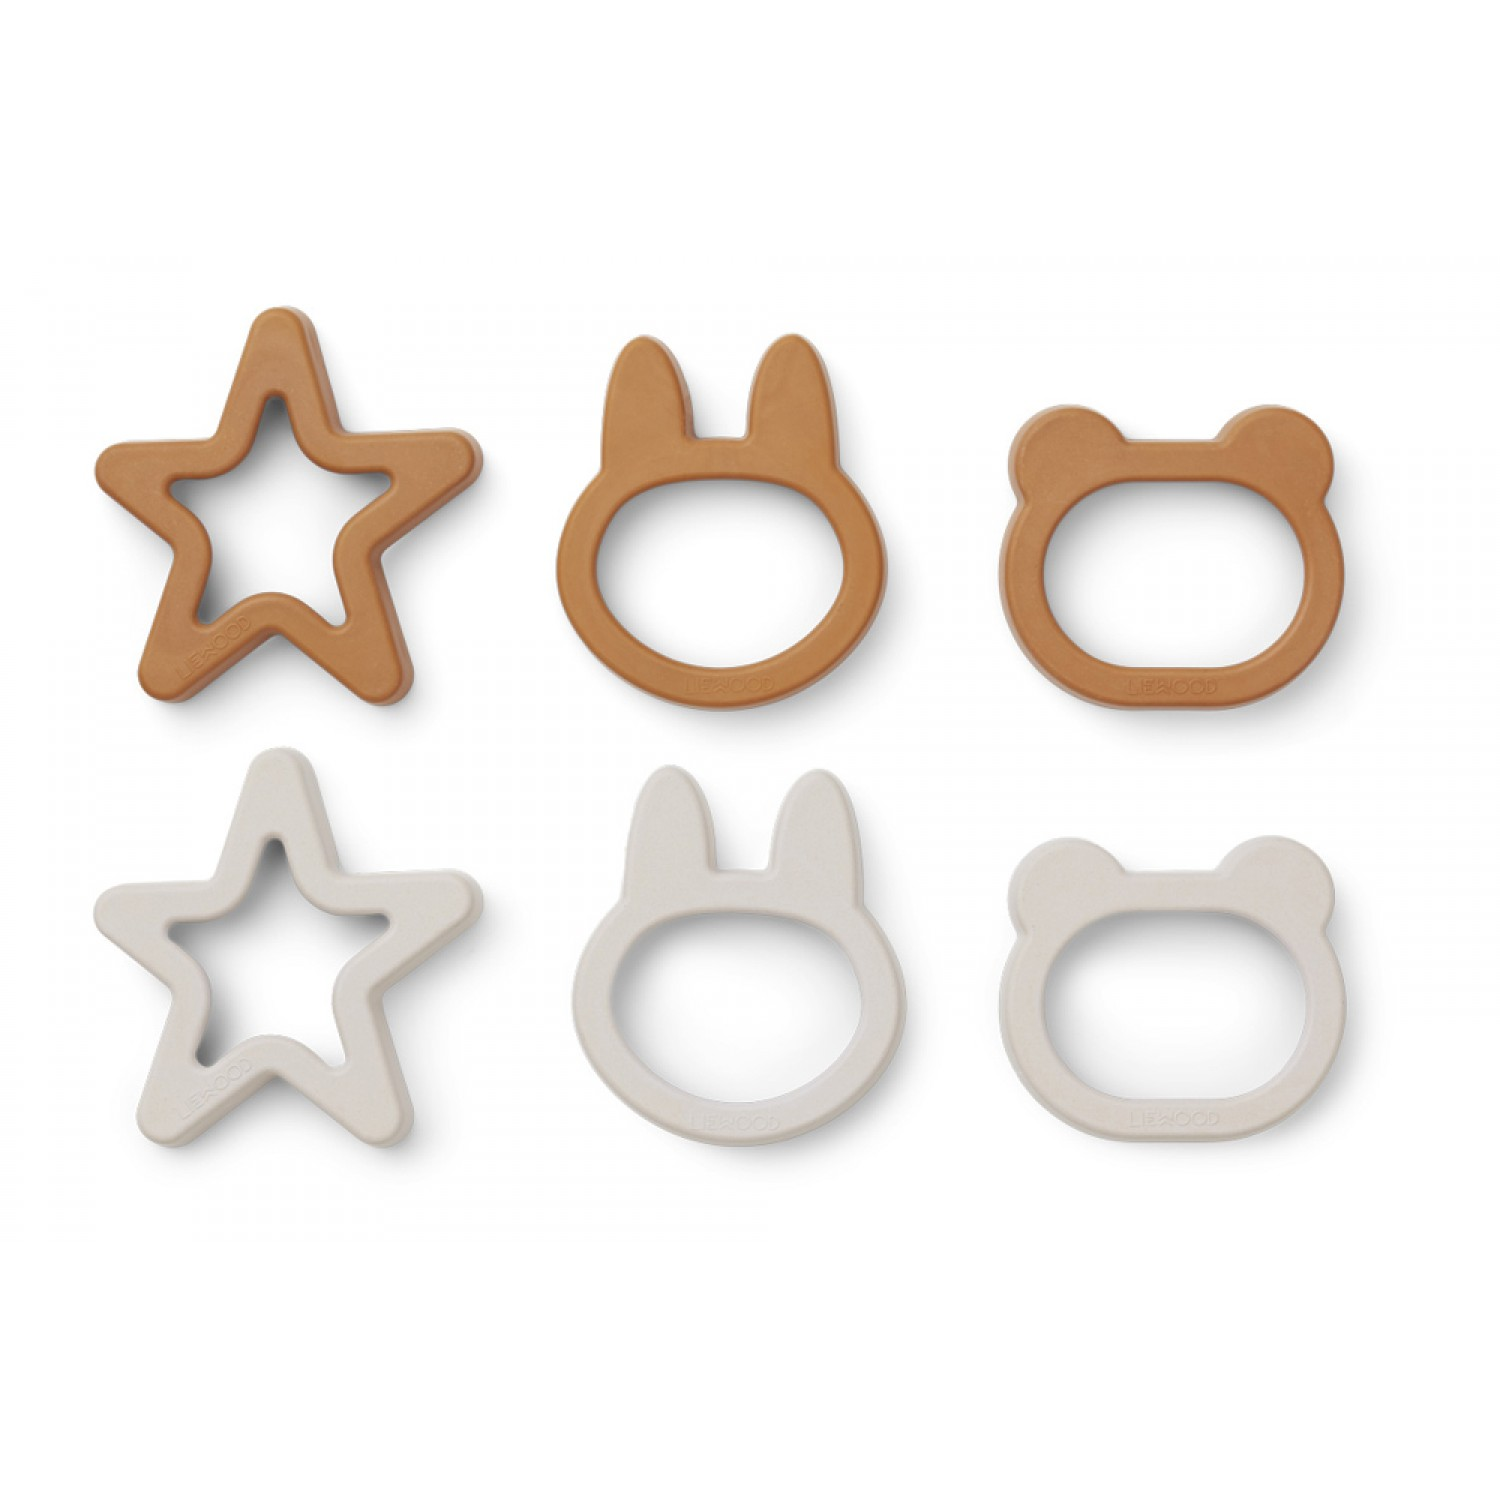 Andy Cookie Cutter - 6 pack   Mustard